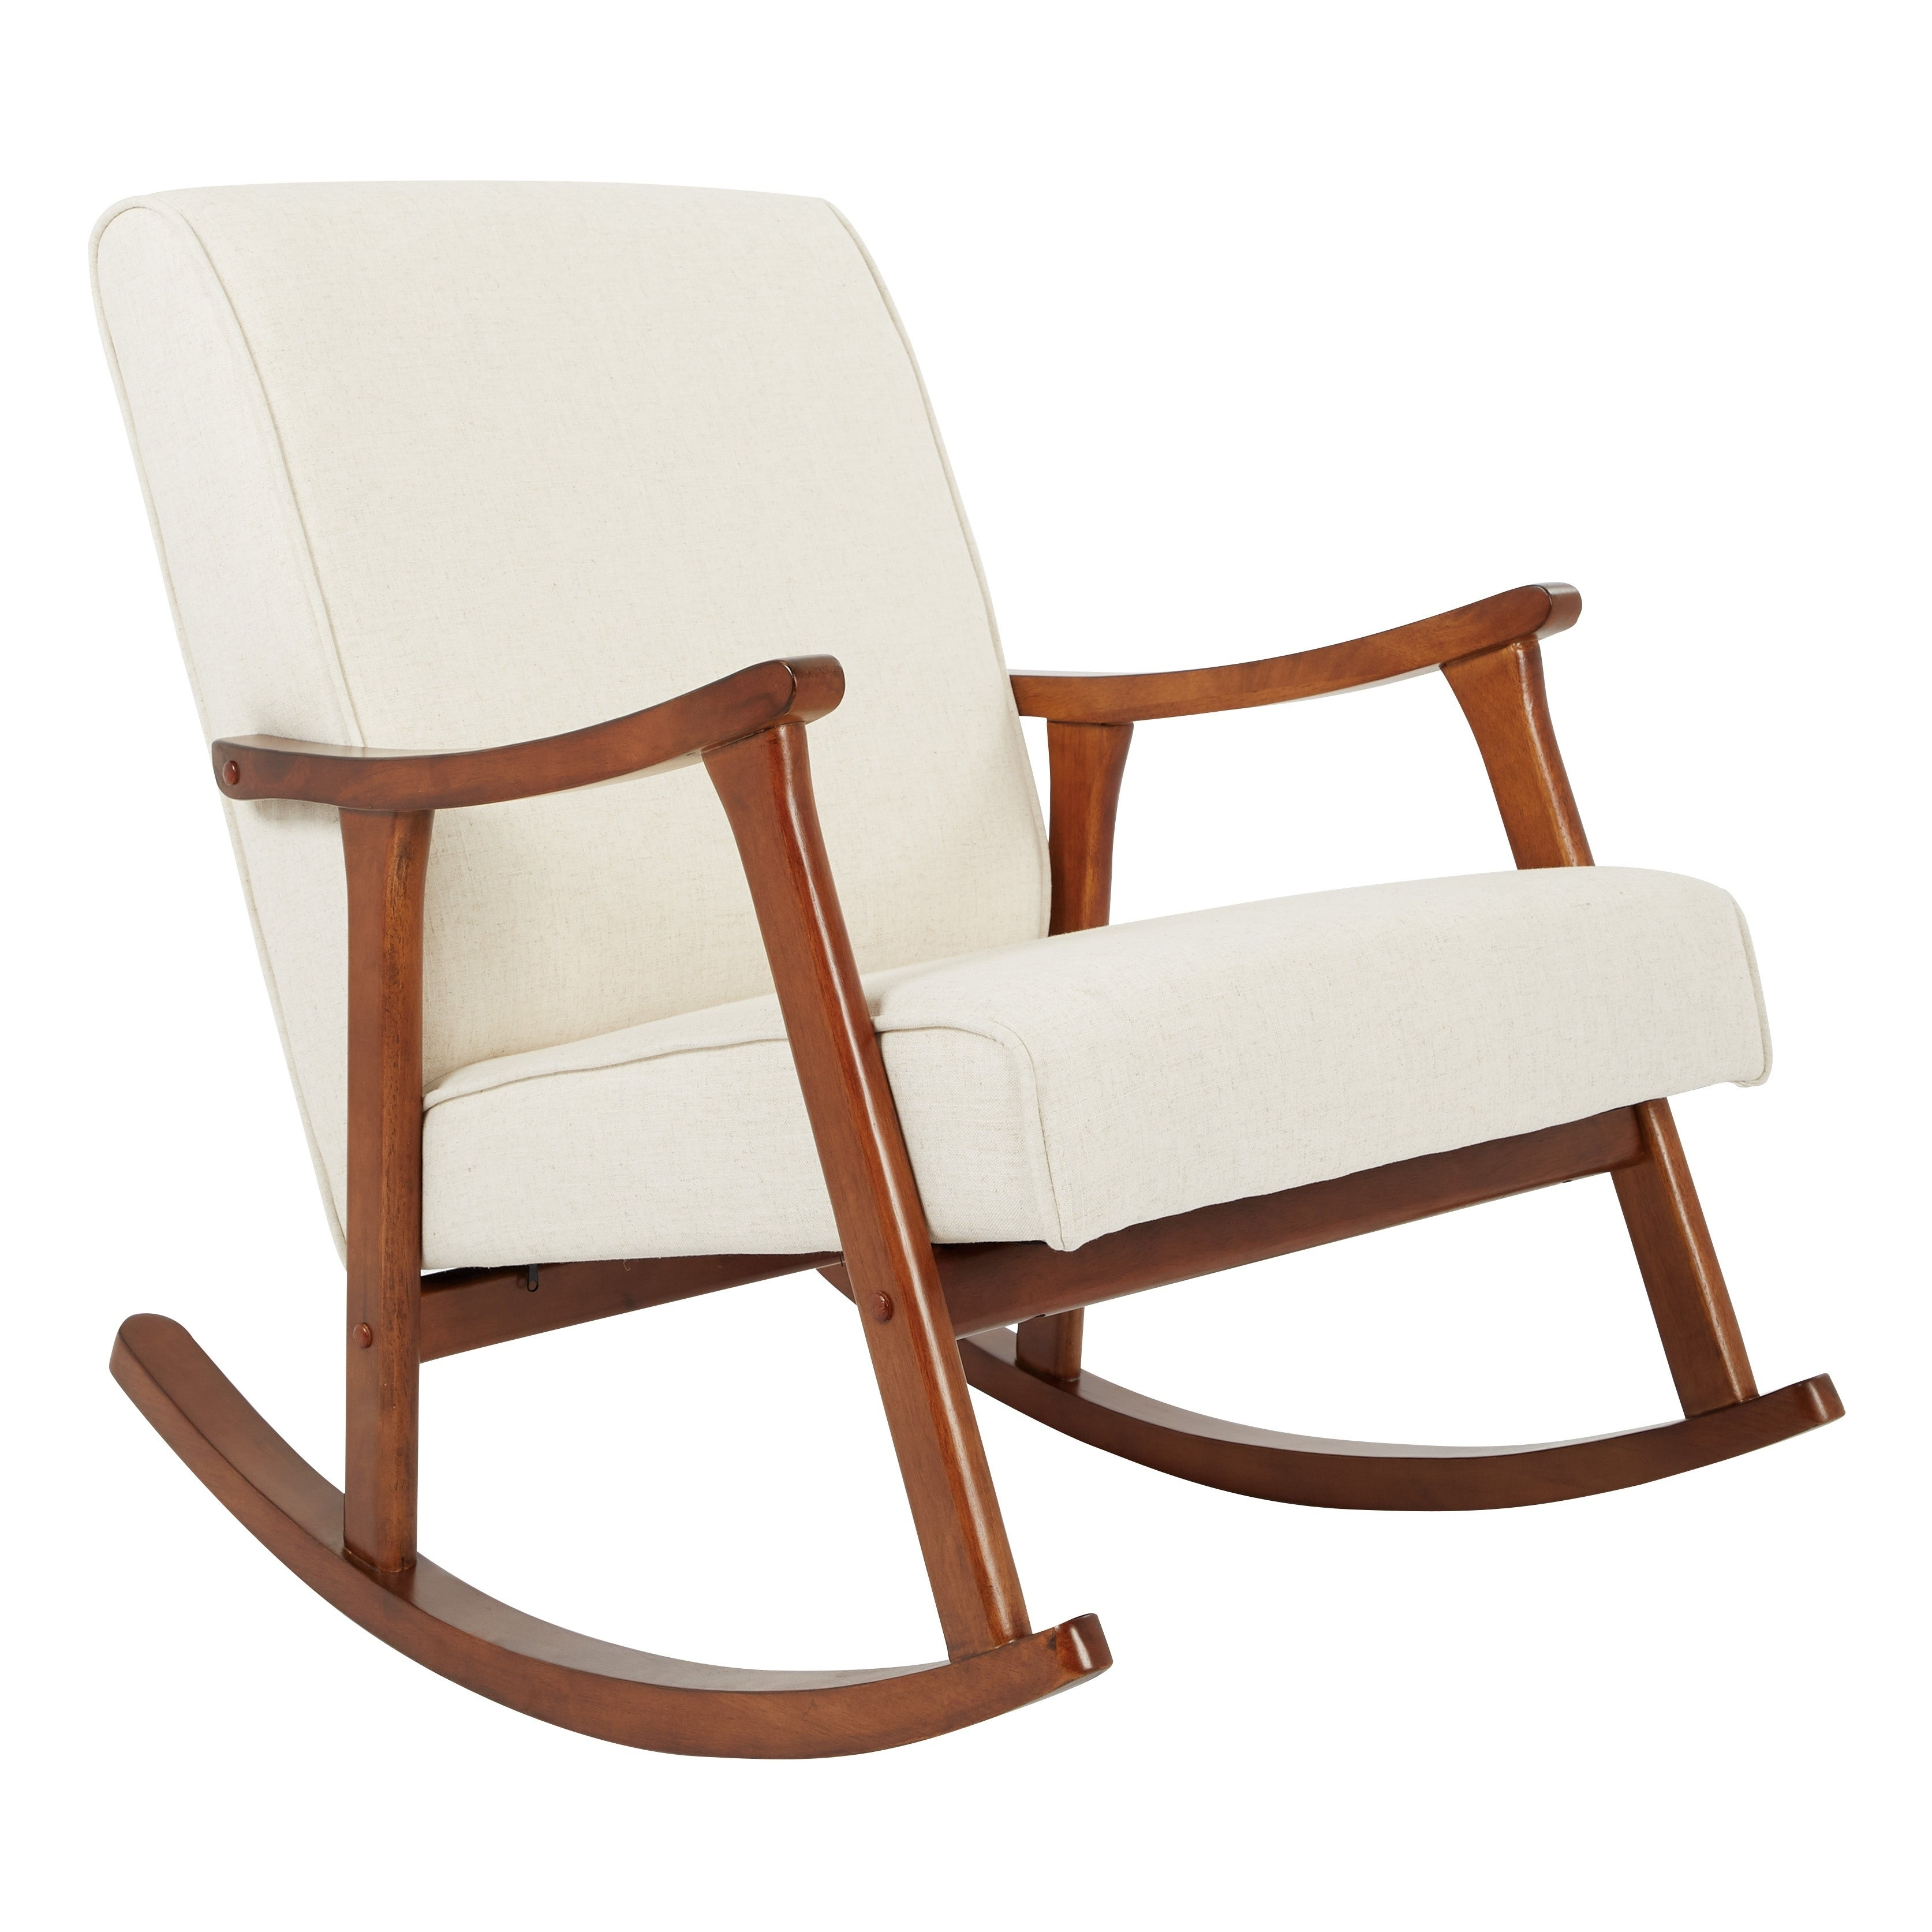 Rocking Chairs, Rustic Living Room Chairs | Shop Online At For Ethel Country White Rocking Chairs (View 14 of 20)